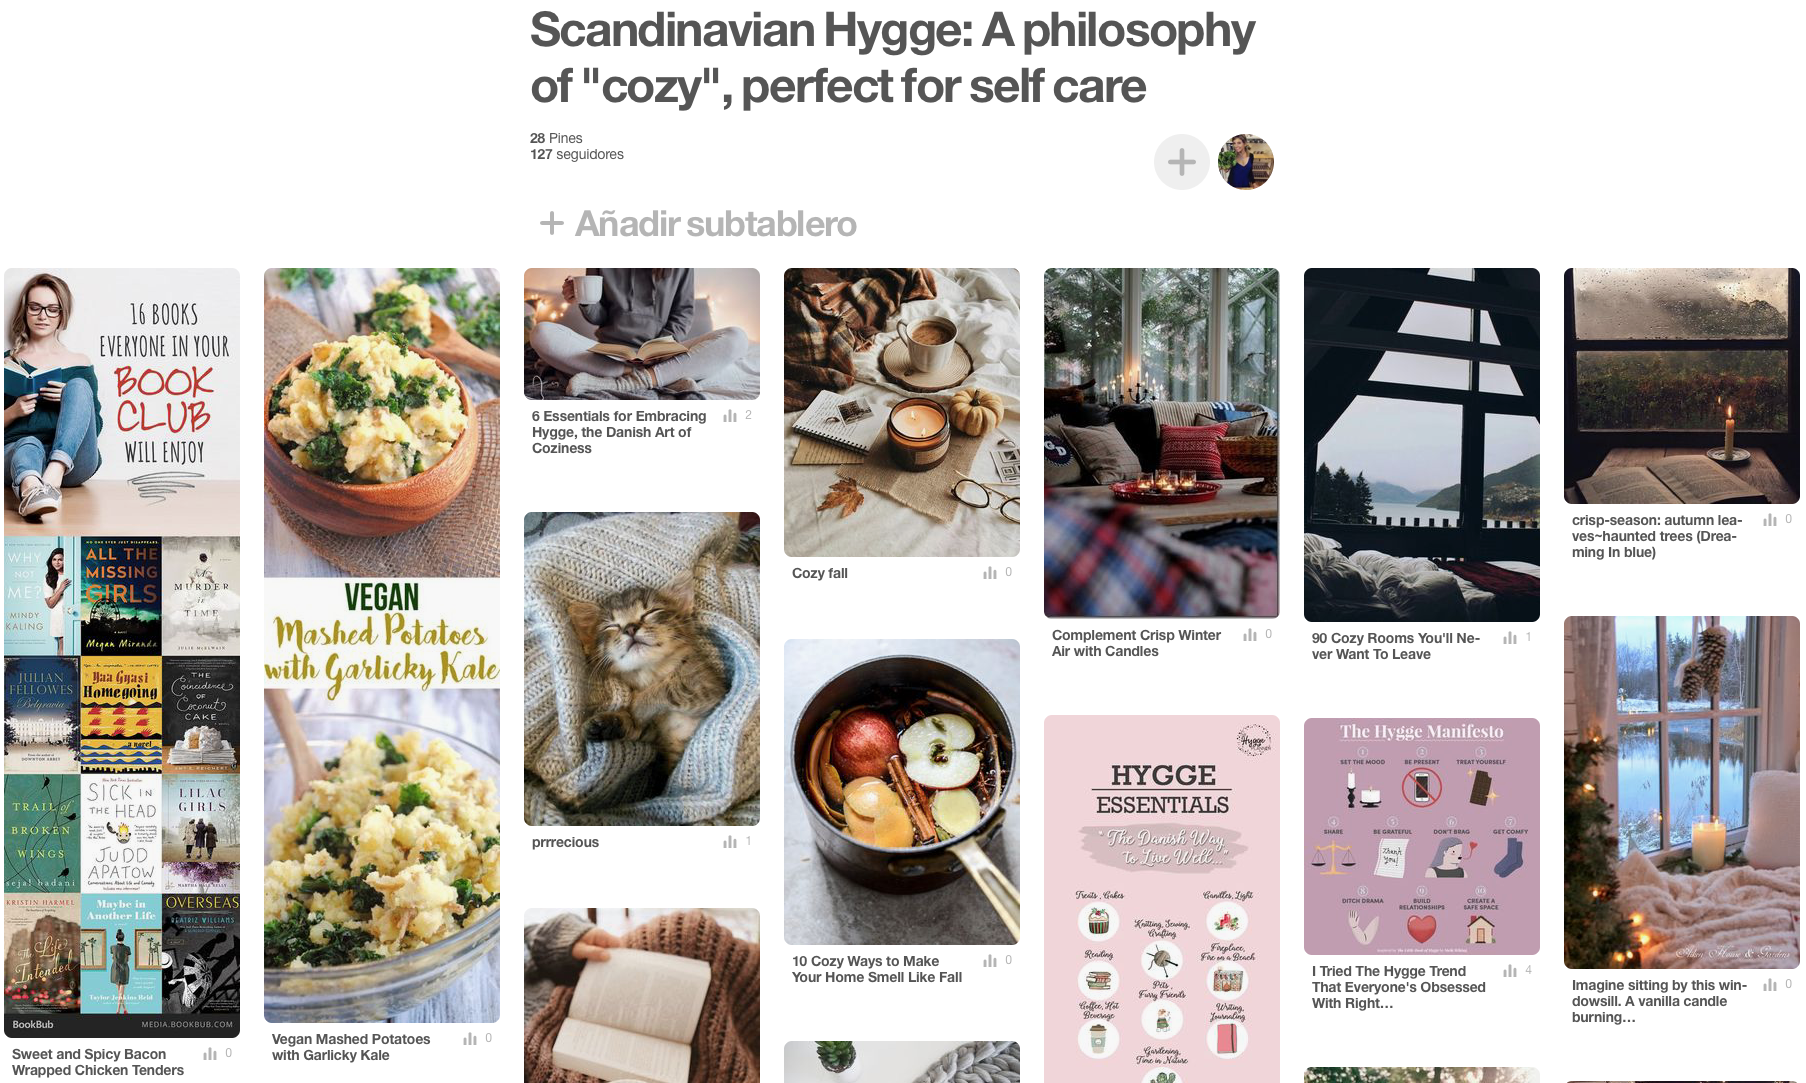 The ultimate Hygge guide, the Scandinavian philosophy of coziness ! A Hygge Pinterest board by Brownble